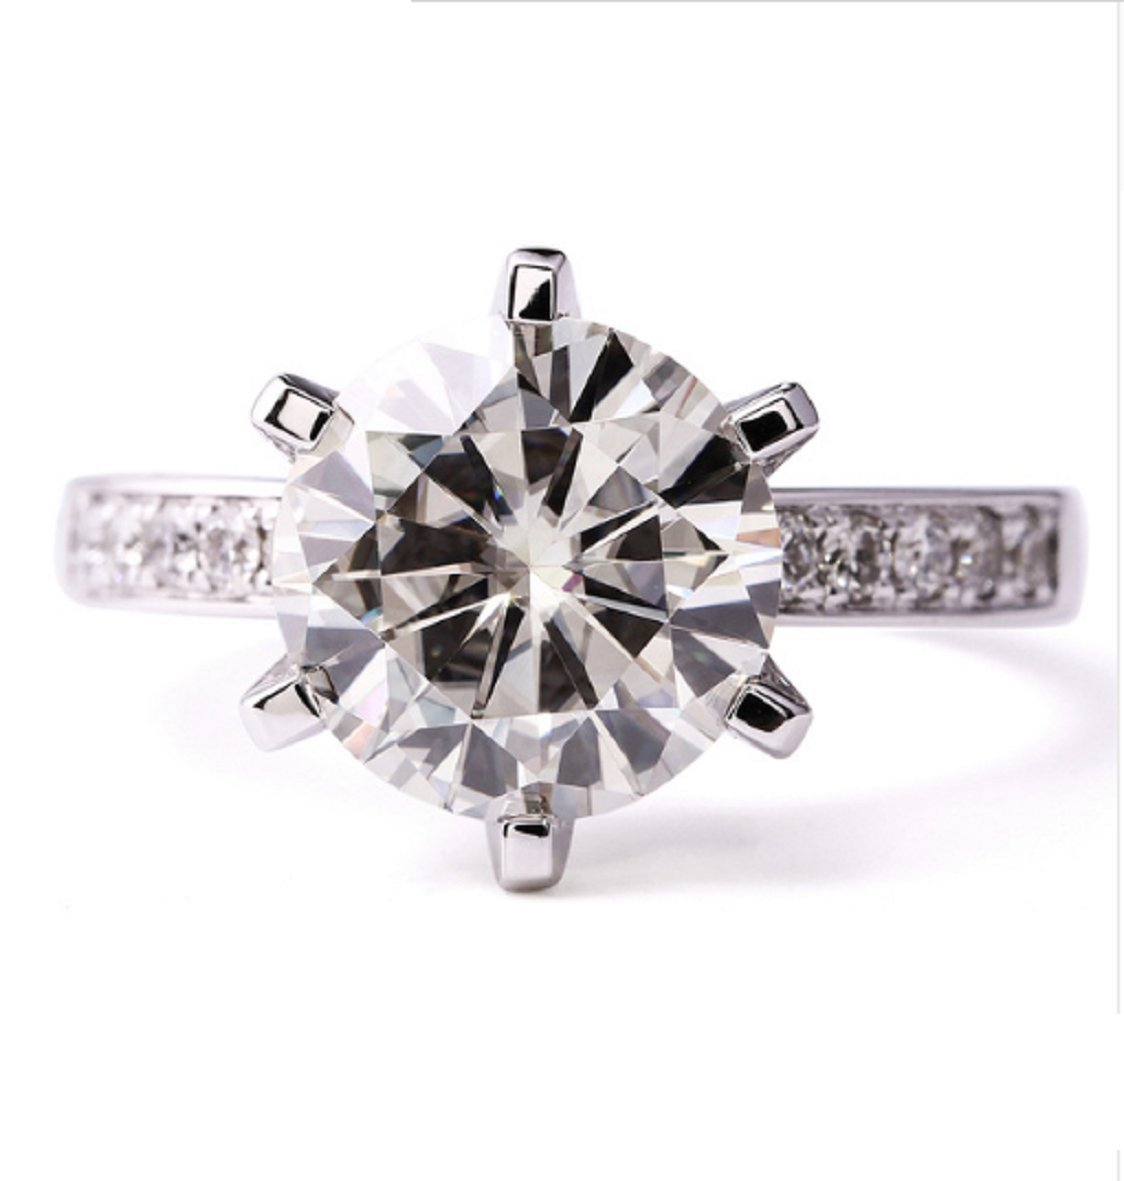 GOWE 6.0 CTW Carat Lab Grown Moissanite Diamond Wedding Engagement Solitaire Ring in Solid by GOWE